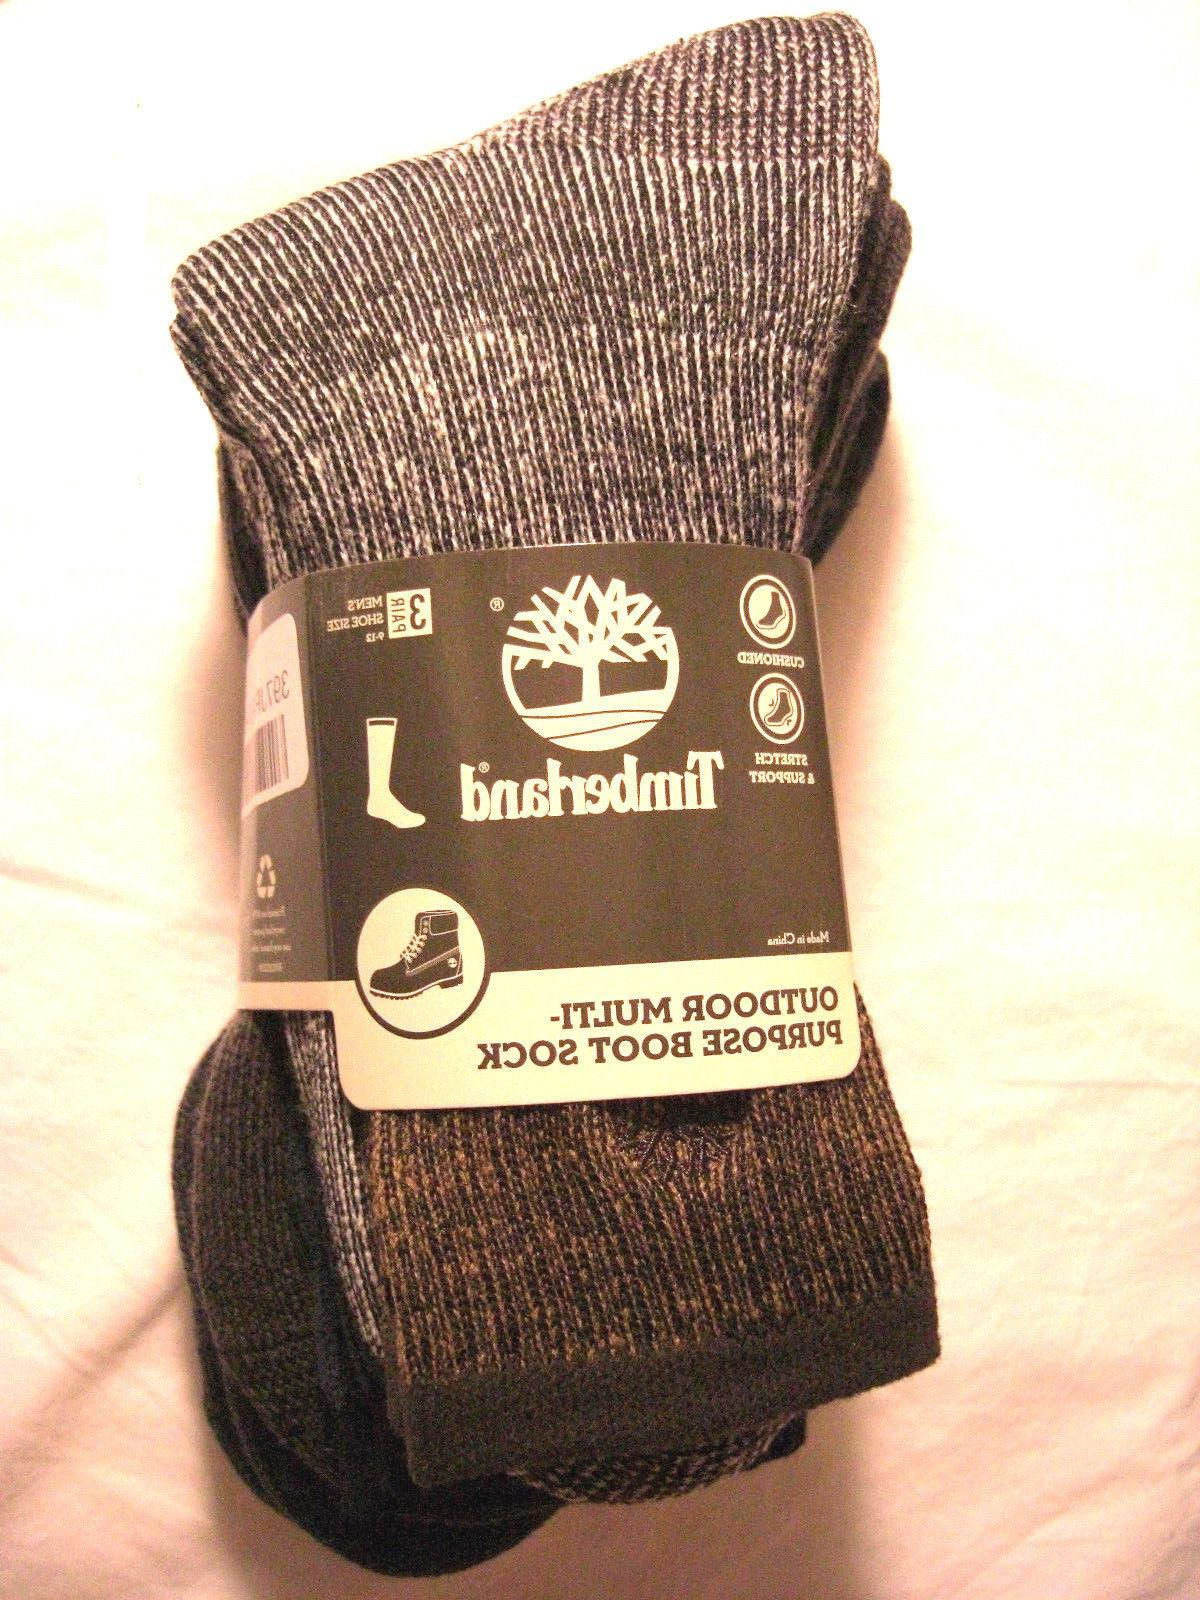 Timberland Outdoor Multi-Purpose Boots Socks 3 Pairs Men's S